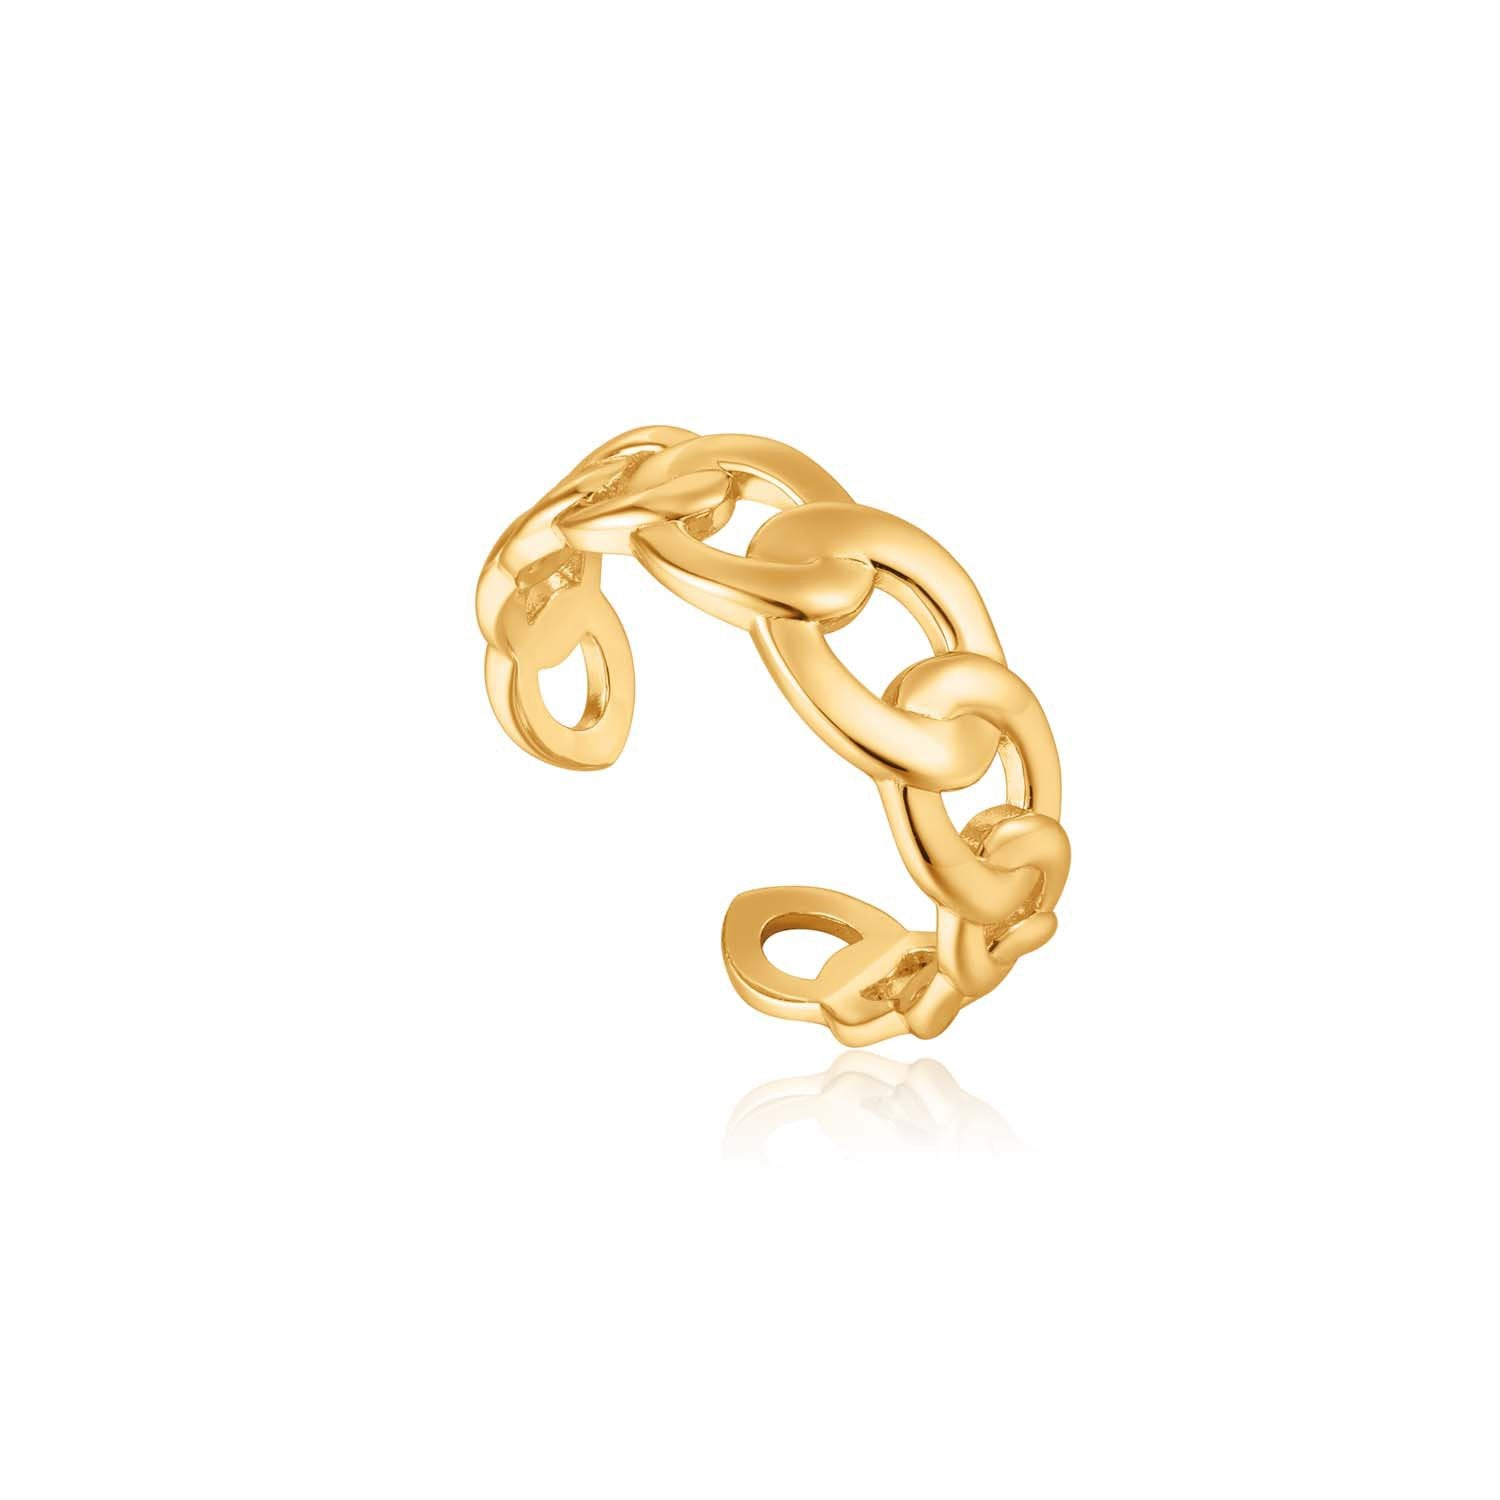 STERLING SILVER YELLOW GOLD PLATED CHAIN REACTION CURB CHAIN ADJUSTABLE RING